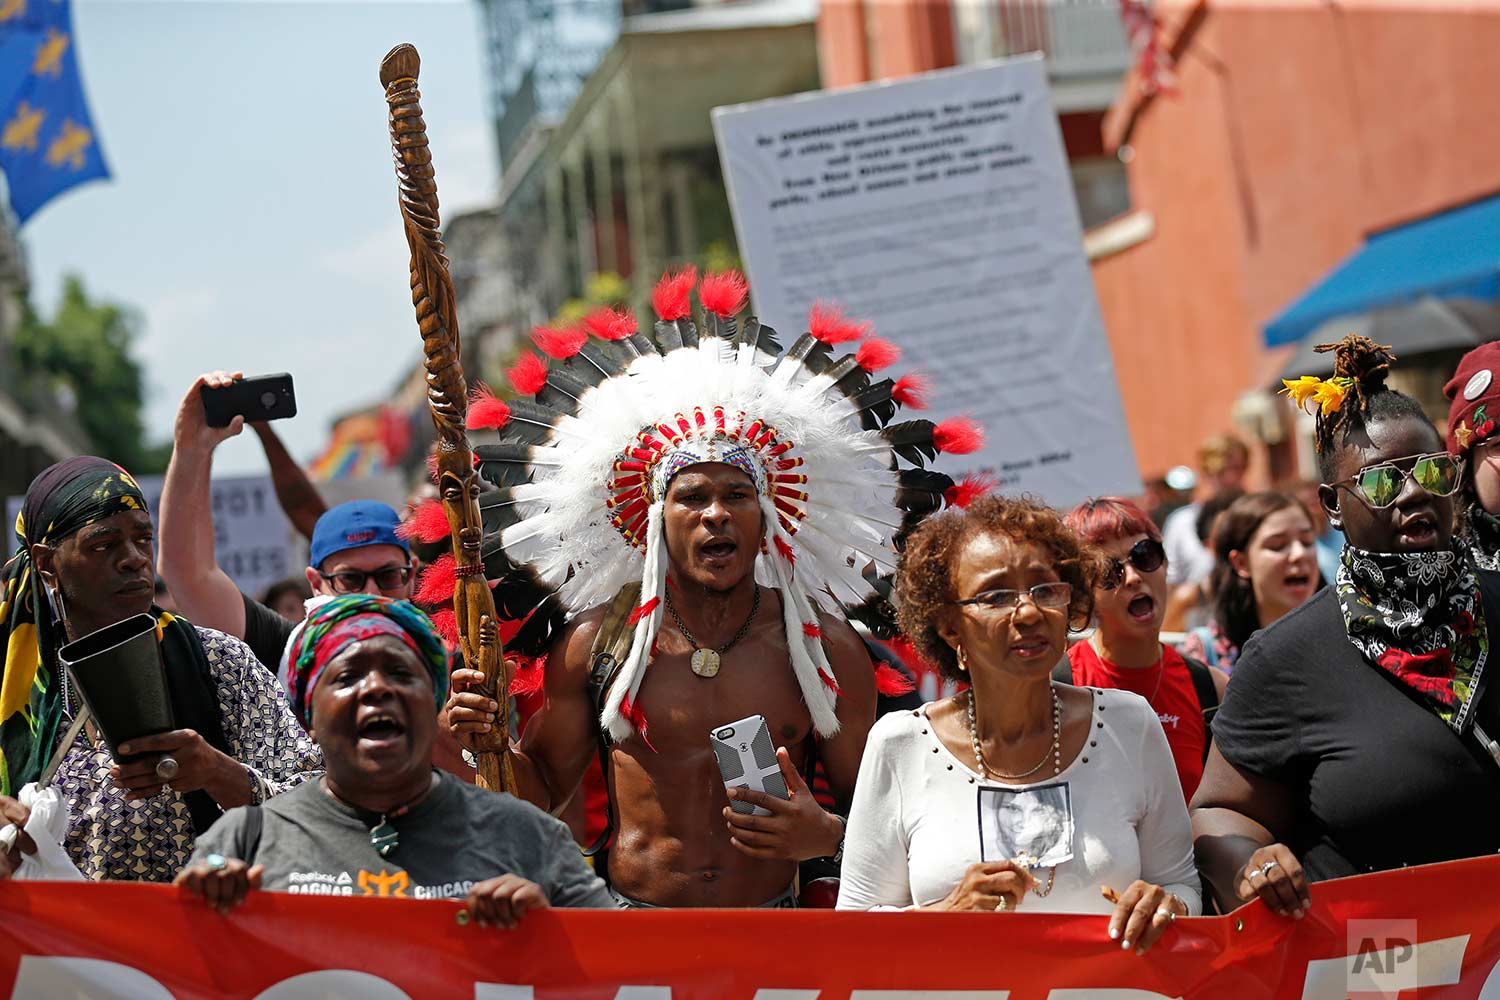 """People participate in a march organized by the group """"Take Em Down NOLA"""" in New Orleans, Saturday, Aug. 19, 2017, to show opposition to white-supremacist rallies and deadly attack in Charlottesville, Va. (AP Photo/Gerald Herbert)"""